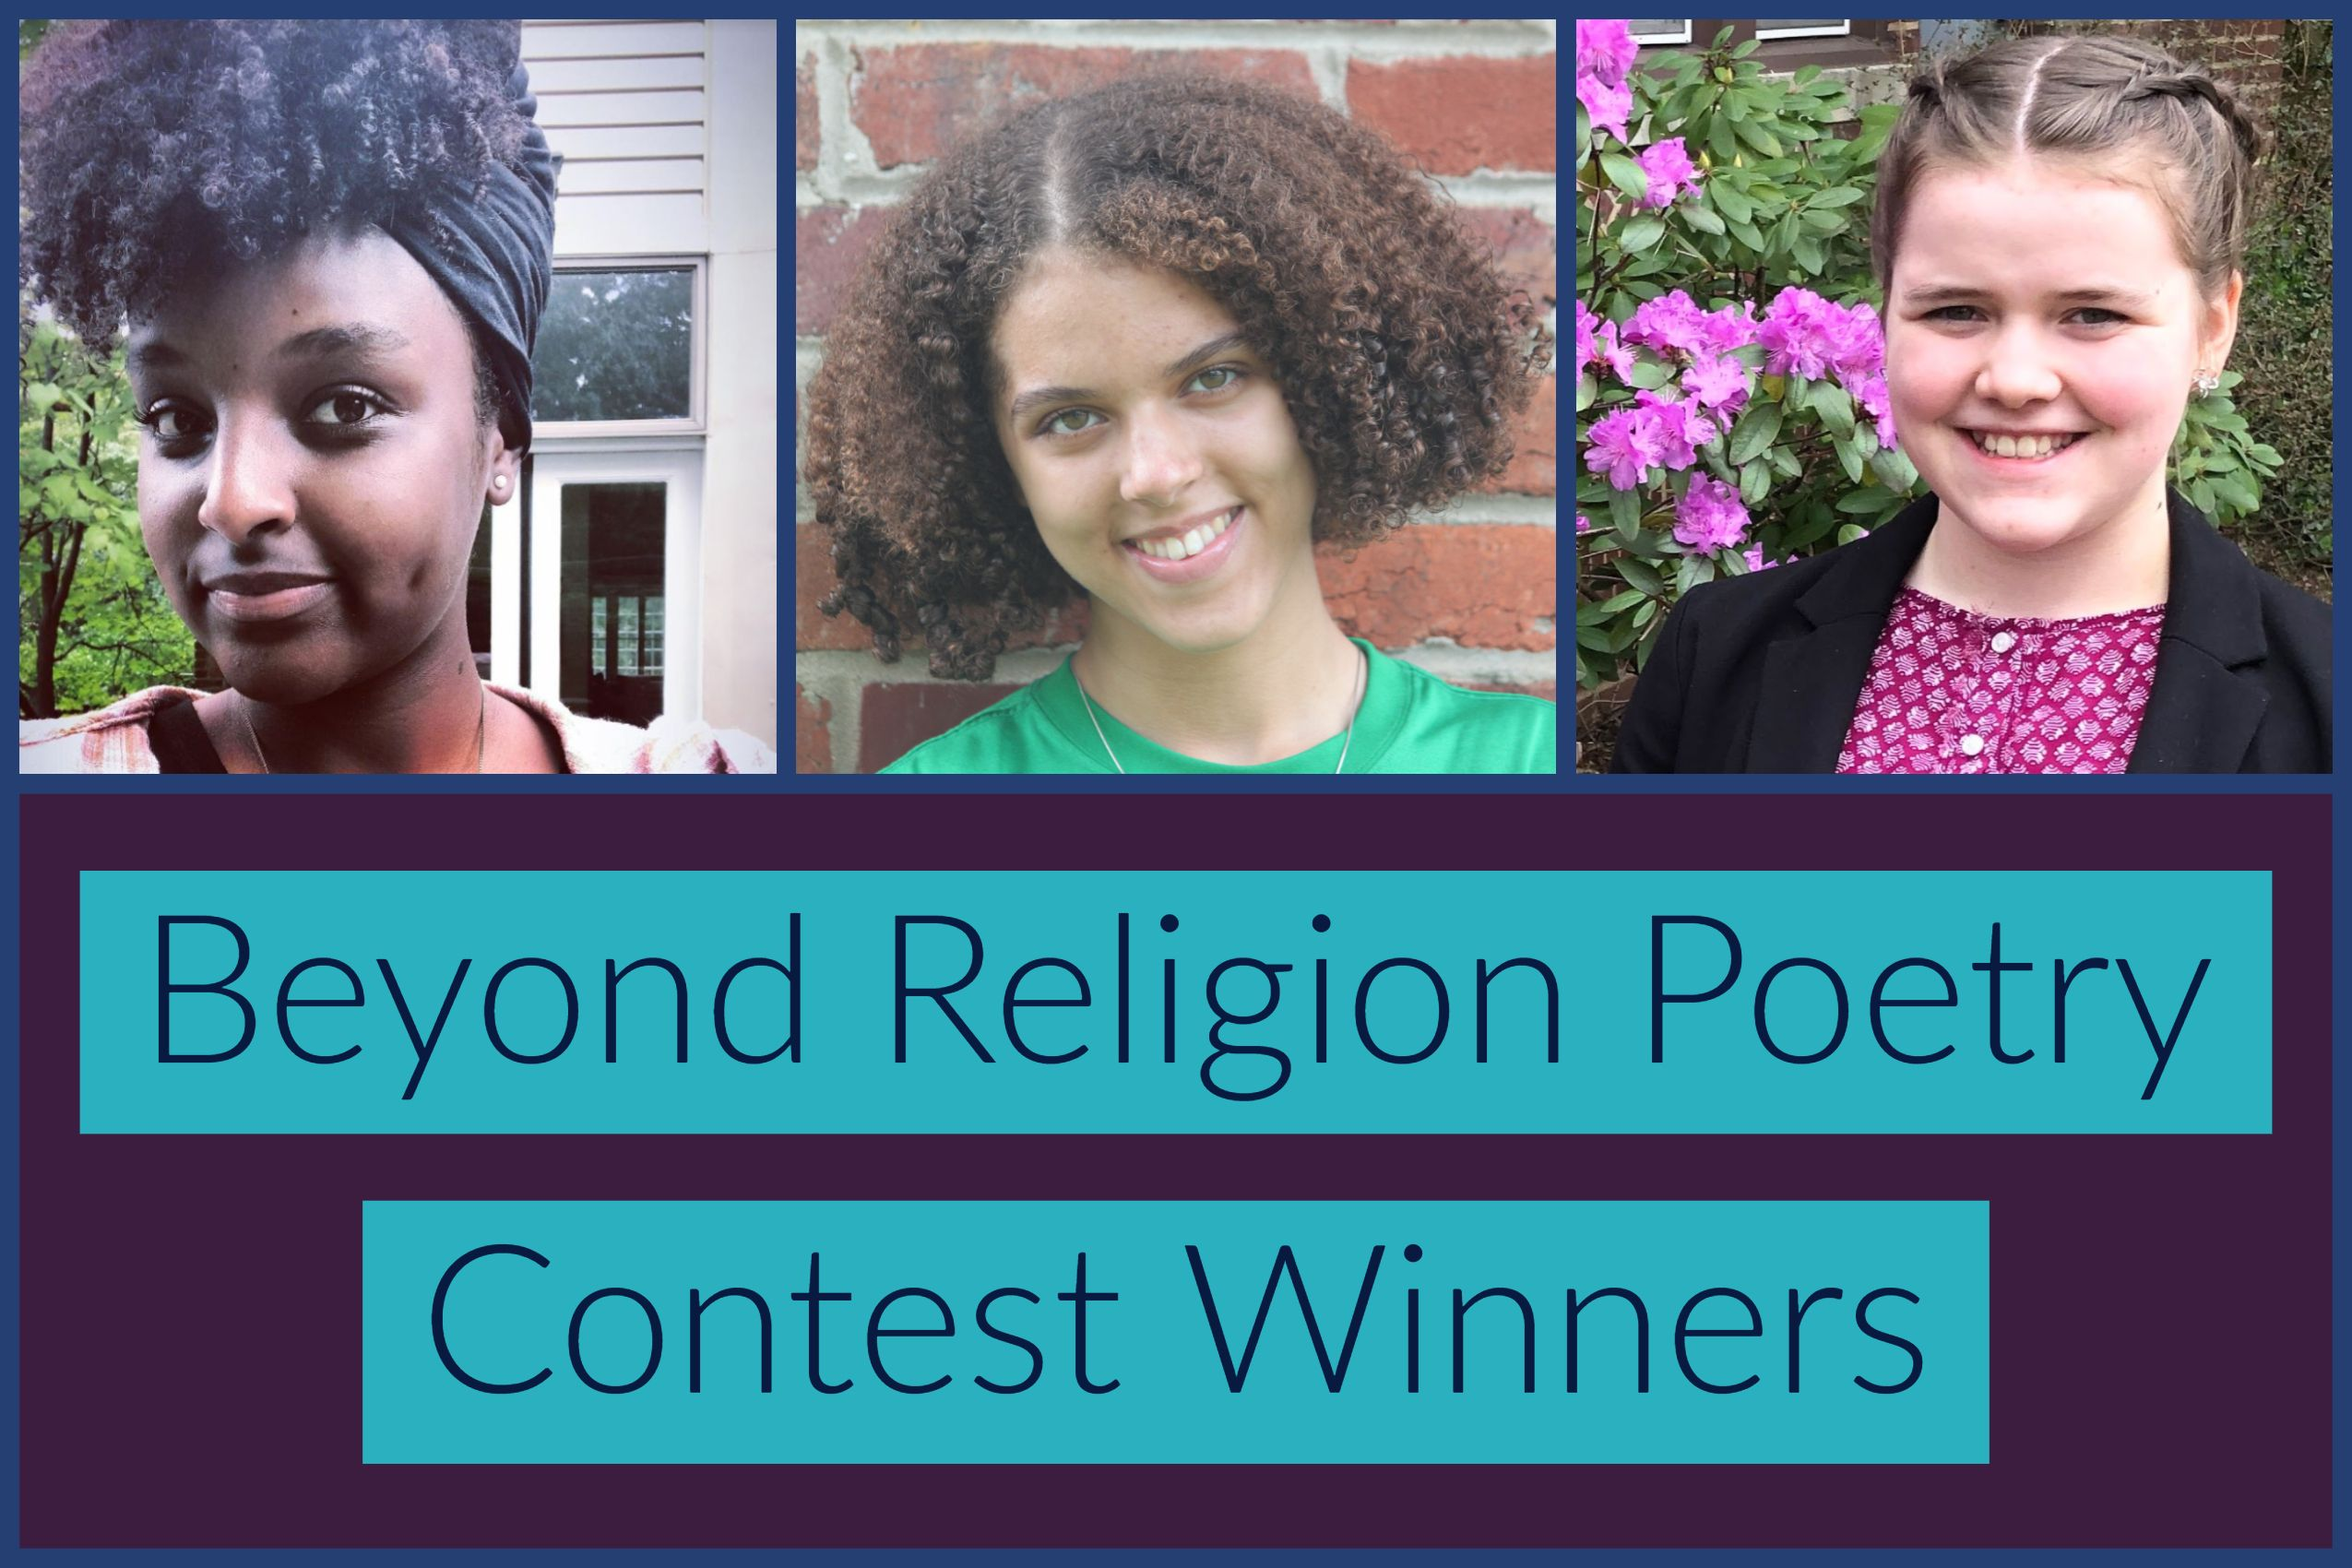 Beyond Religion Poetry Contest winners Selam Weimer, Molly H. Rufus, and Beatrix Stone. United States, 2019.